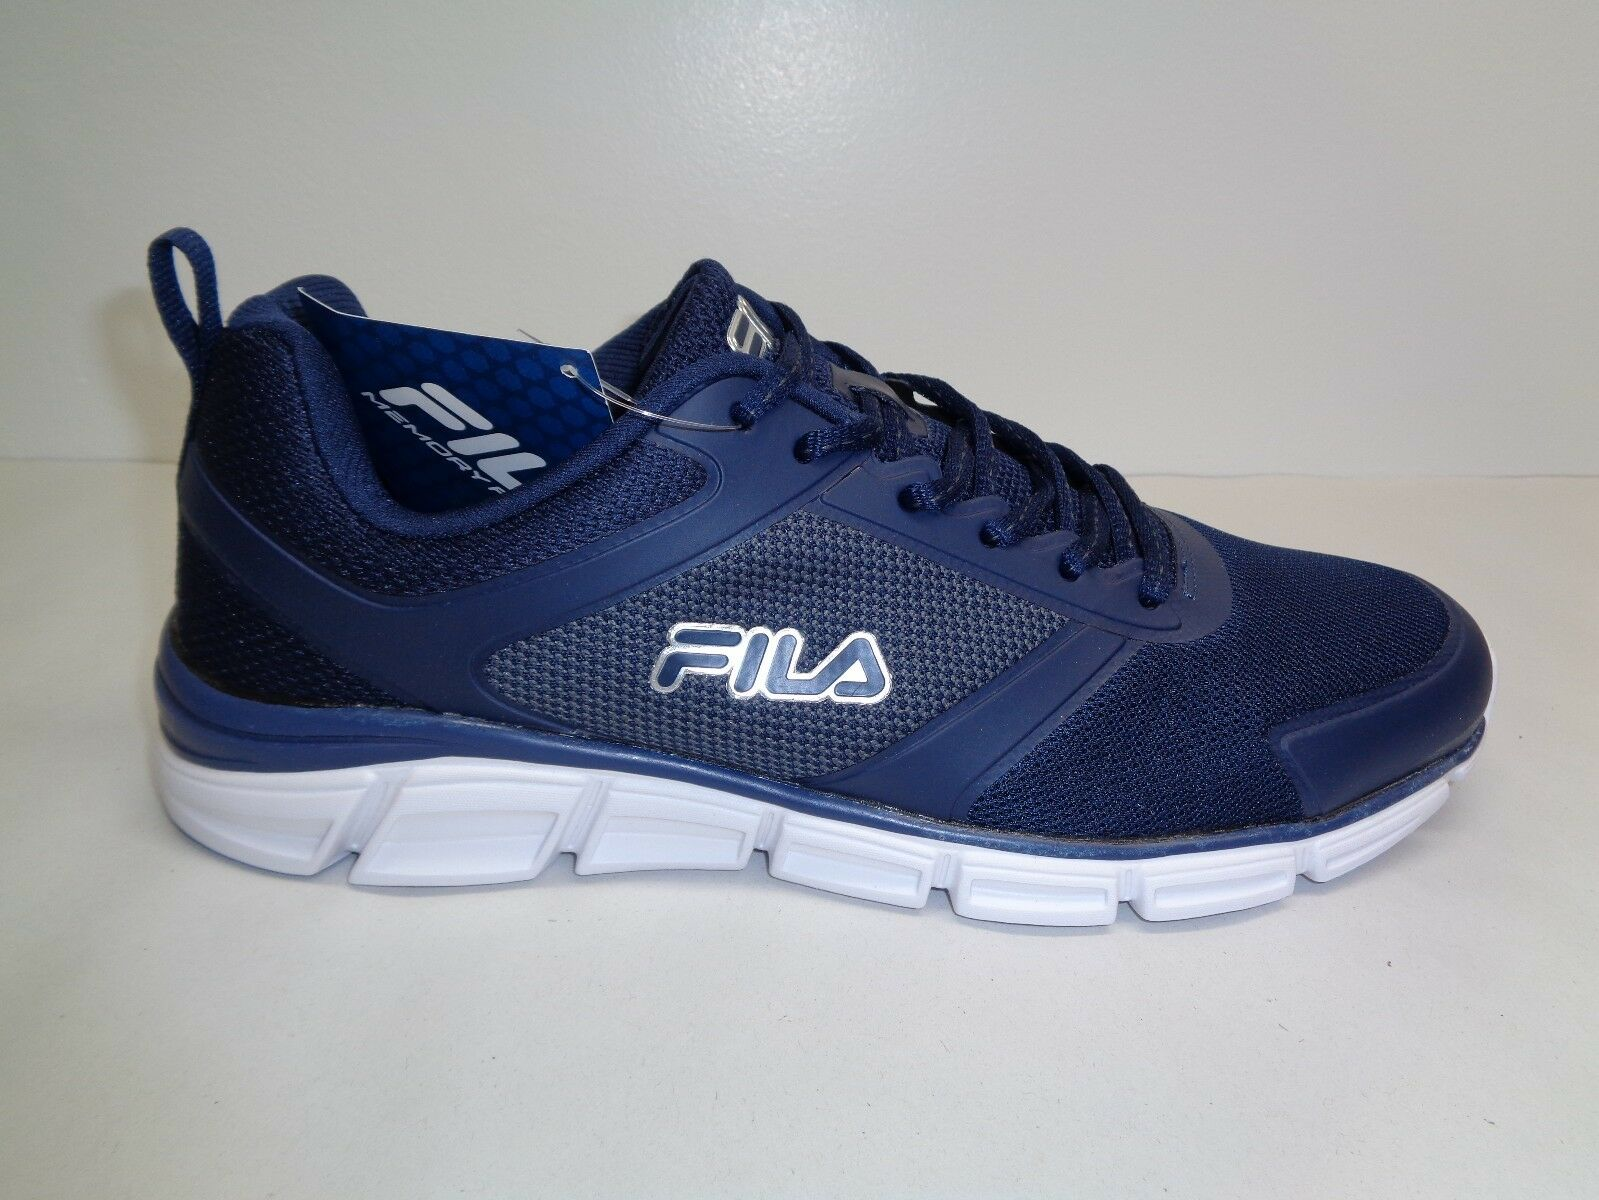 Fila Size 10 MEMORY STEELSPRINT Blue Training Athletic Sneakers New Mens Shoes